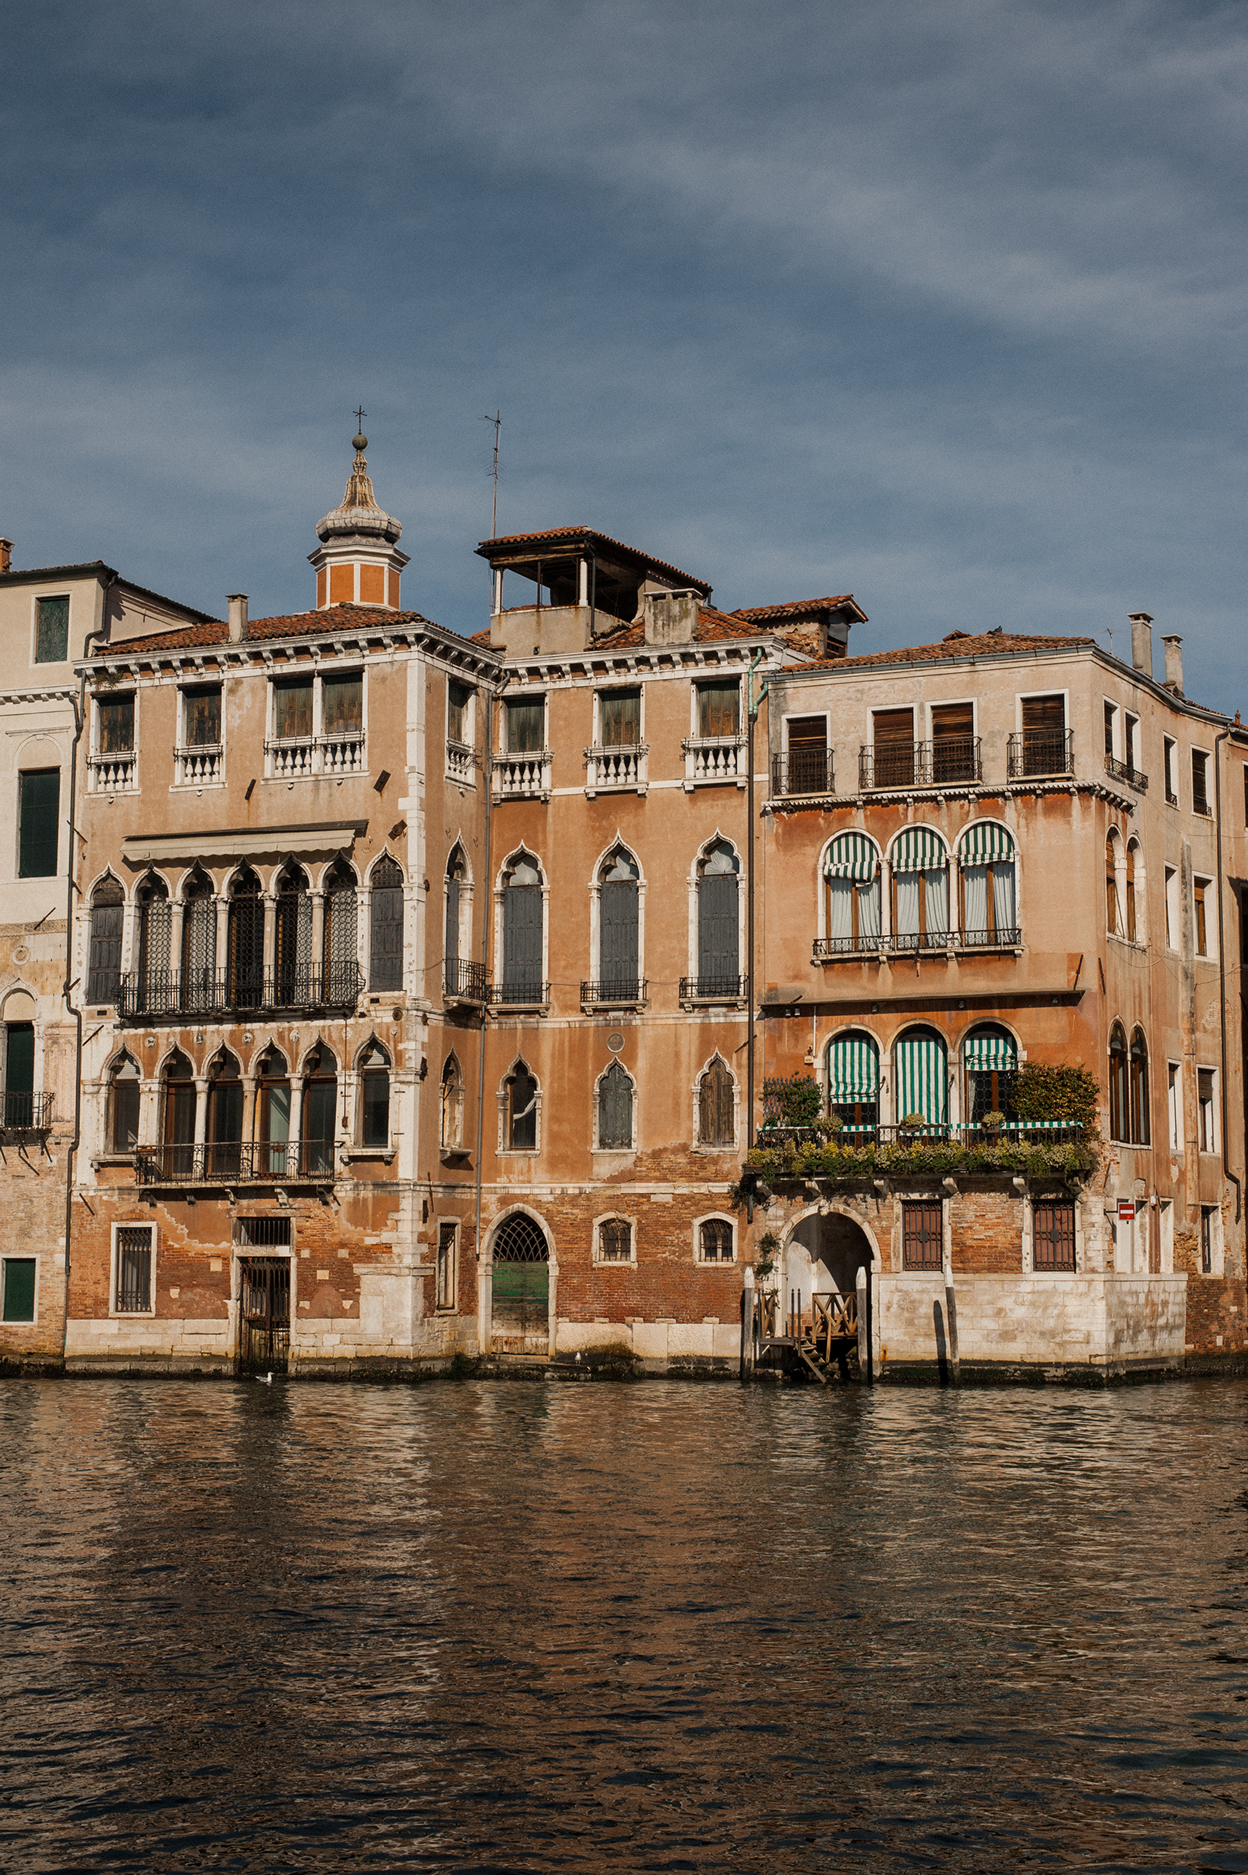 KC_Lifestyle_Photographer_OutdoorPhotography_Adventure_Photography_Venice_Italy25.jpg